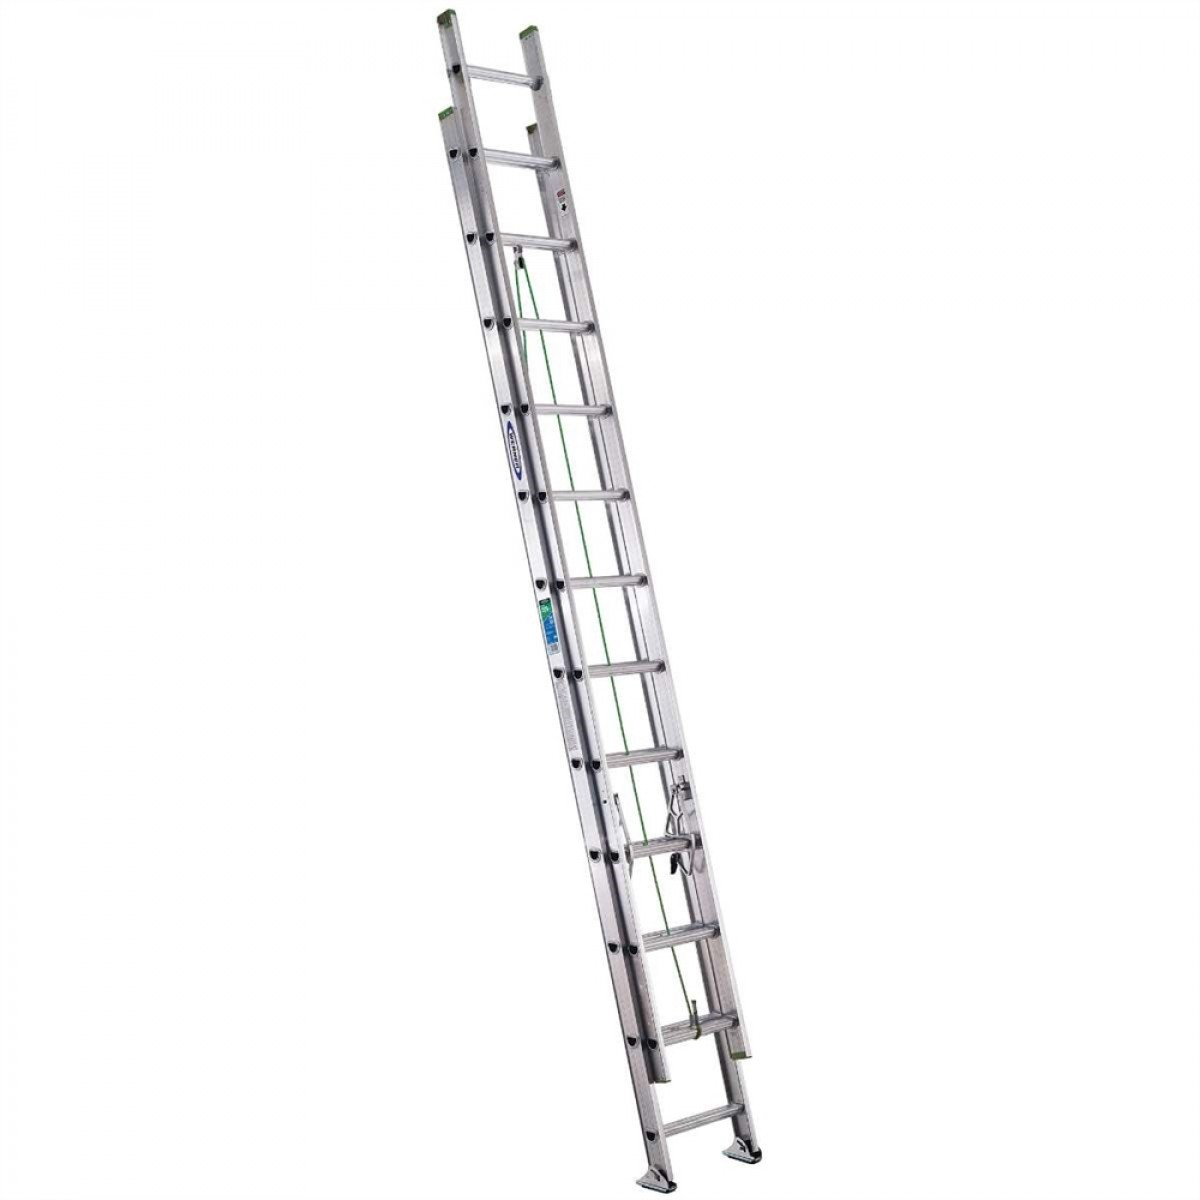 Werner D Rung Aluminum Extension Ladder D 2 16 40